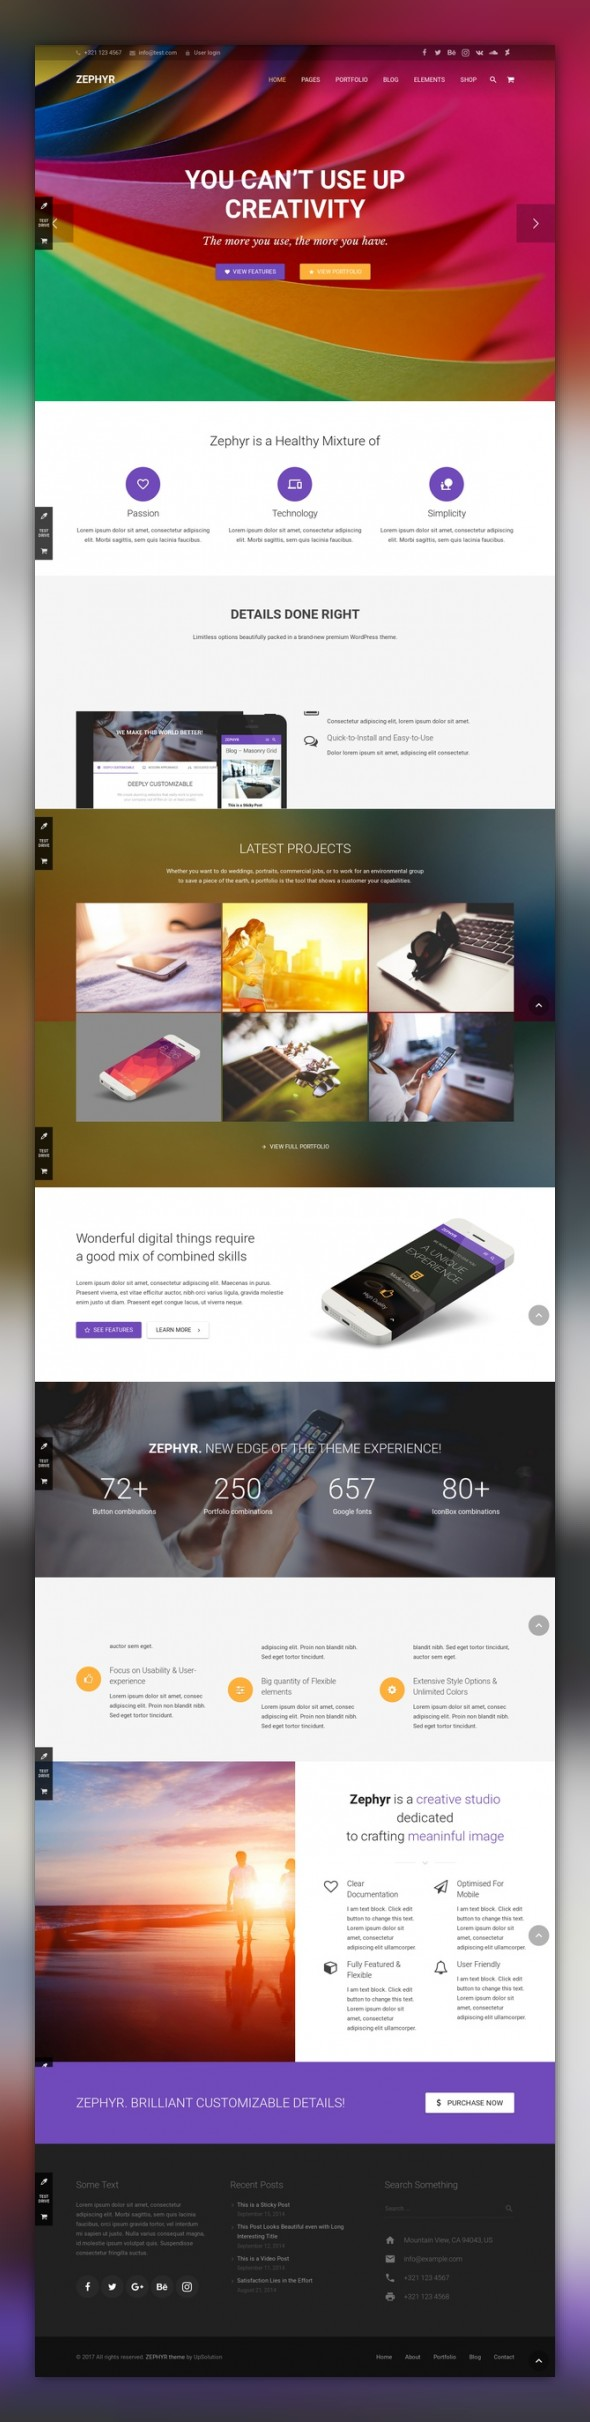 Zephyr | Material Design Theme blog, business, clean, corporate ...